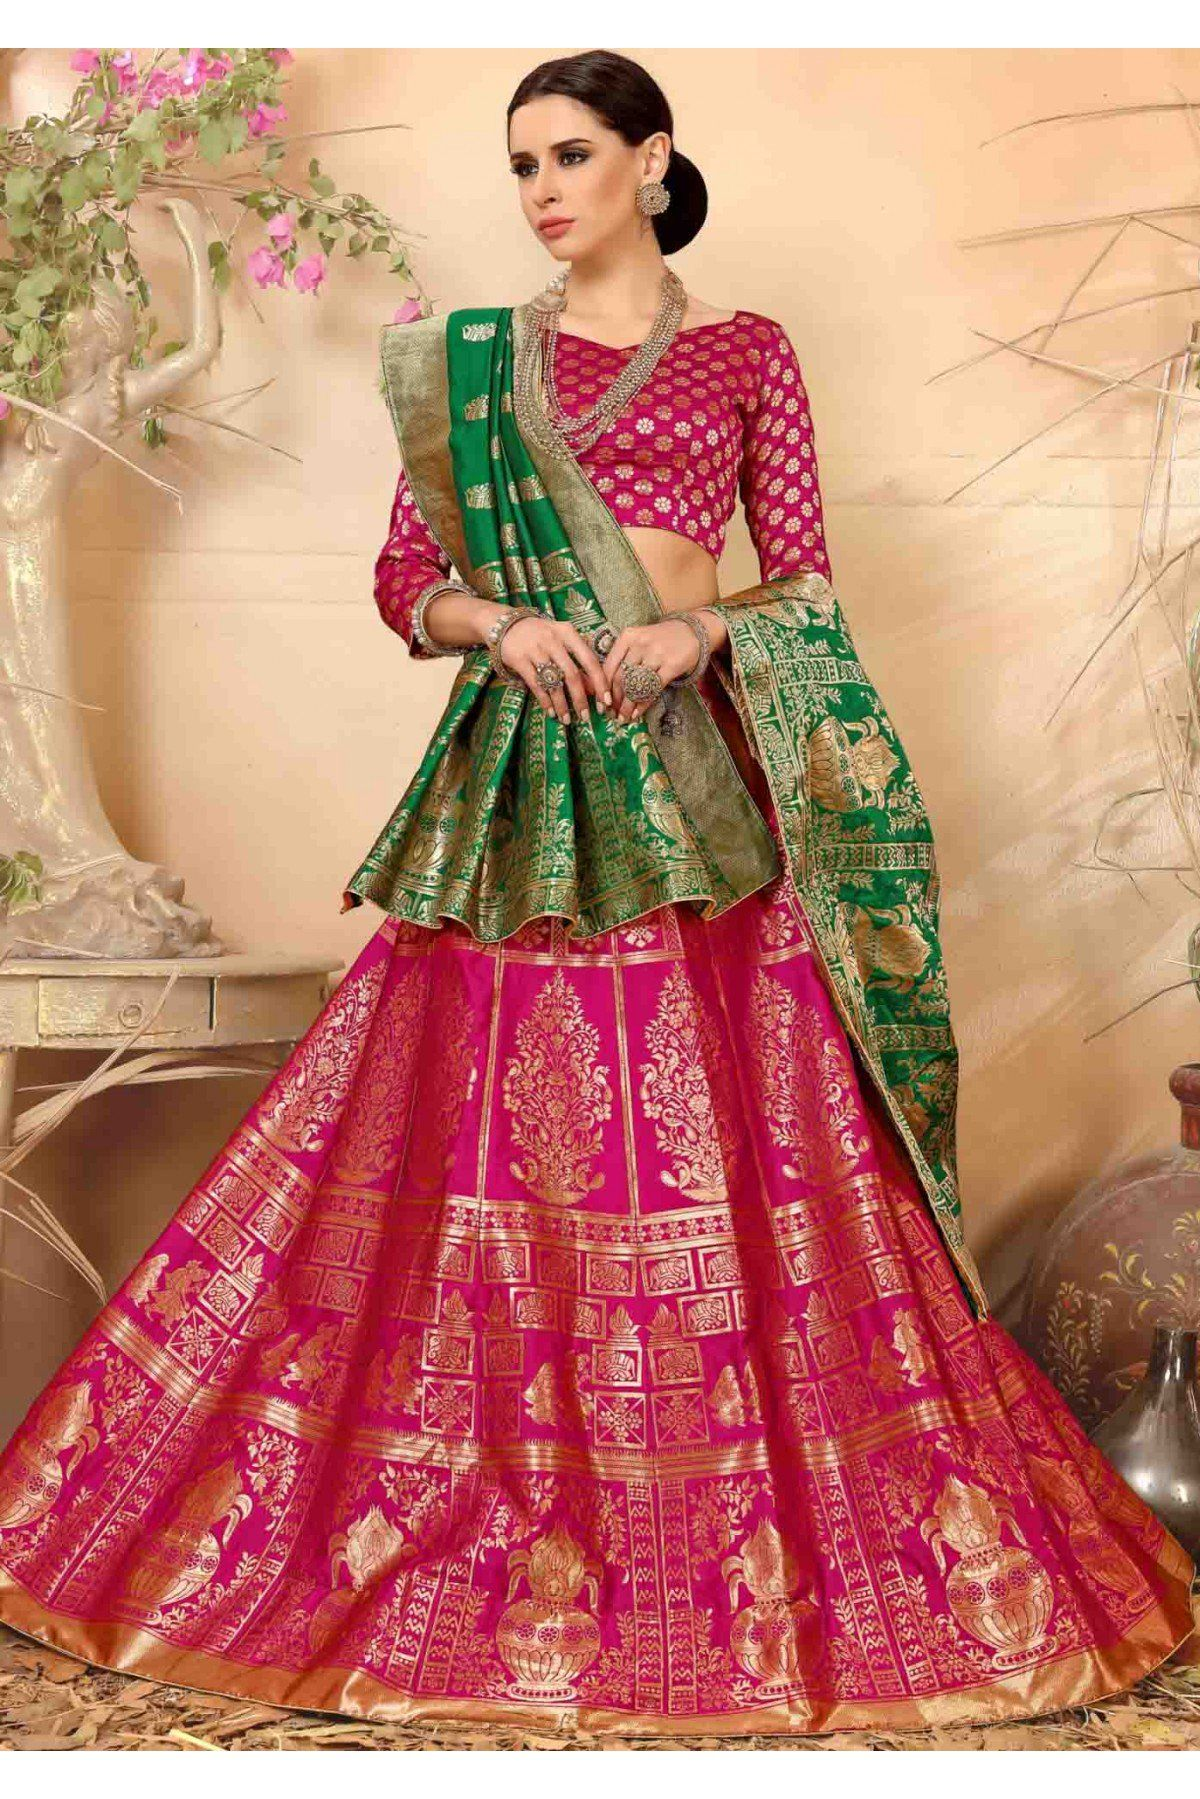 fb07dc26fd Buy Banarasi Silk Lehenga Choli In Pink Colour @ ninecolours.com. Customize  Tailoring available!